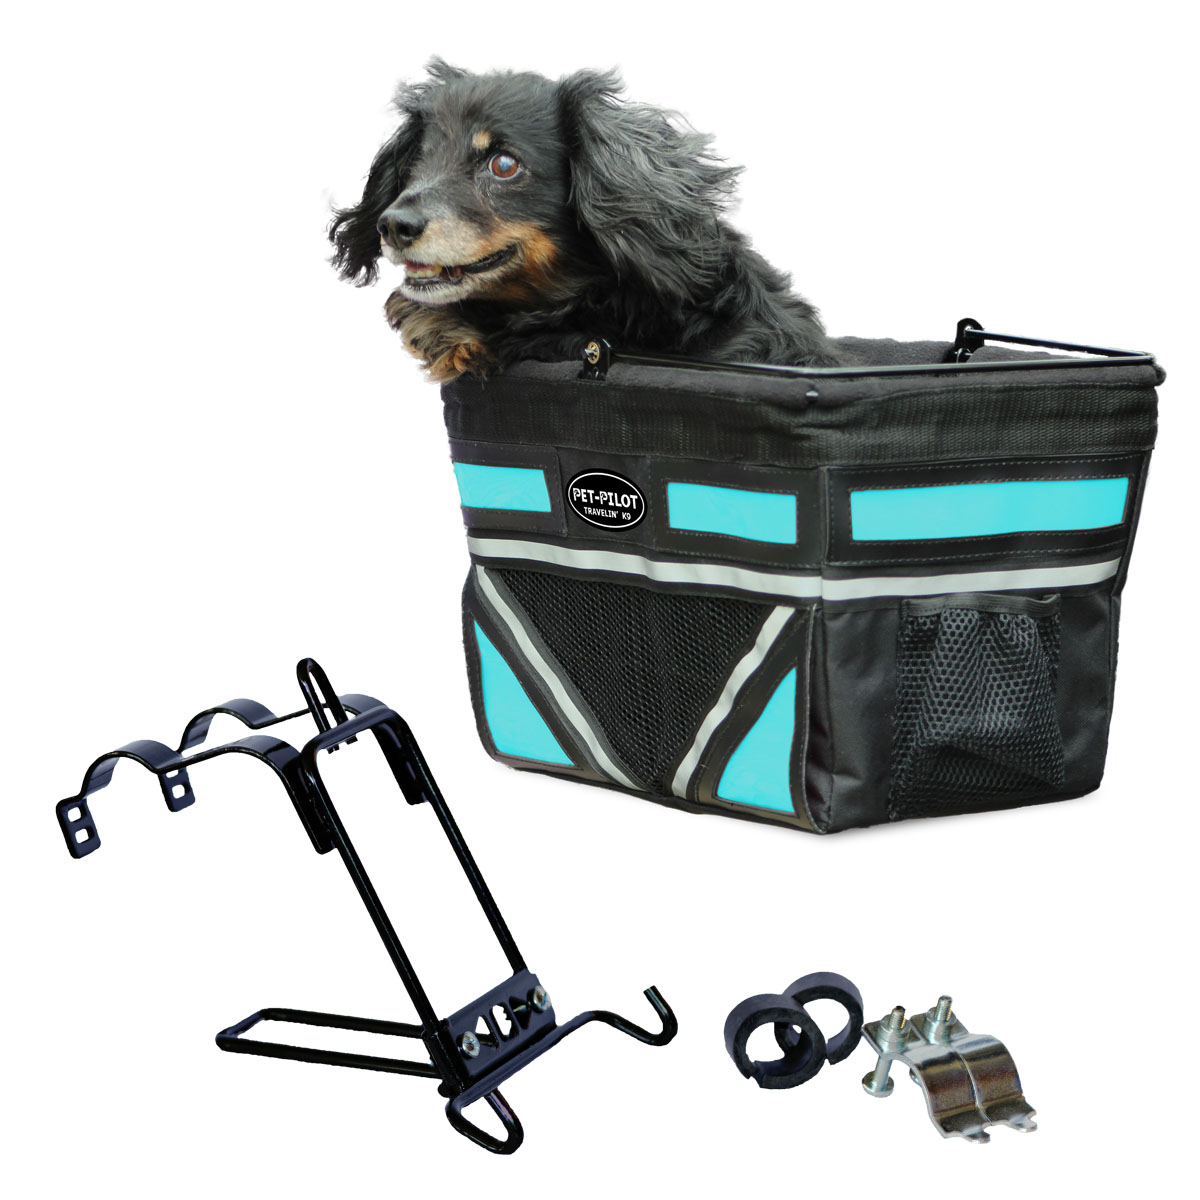 Travelin K9 2018 Pet-Pilot Bike Basket for Dogs & Cats, Turquoise